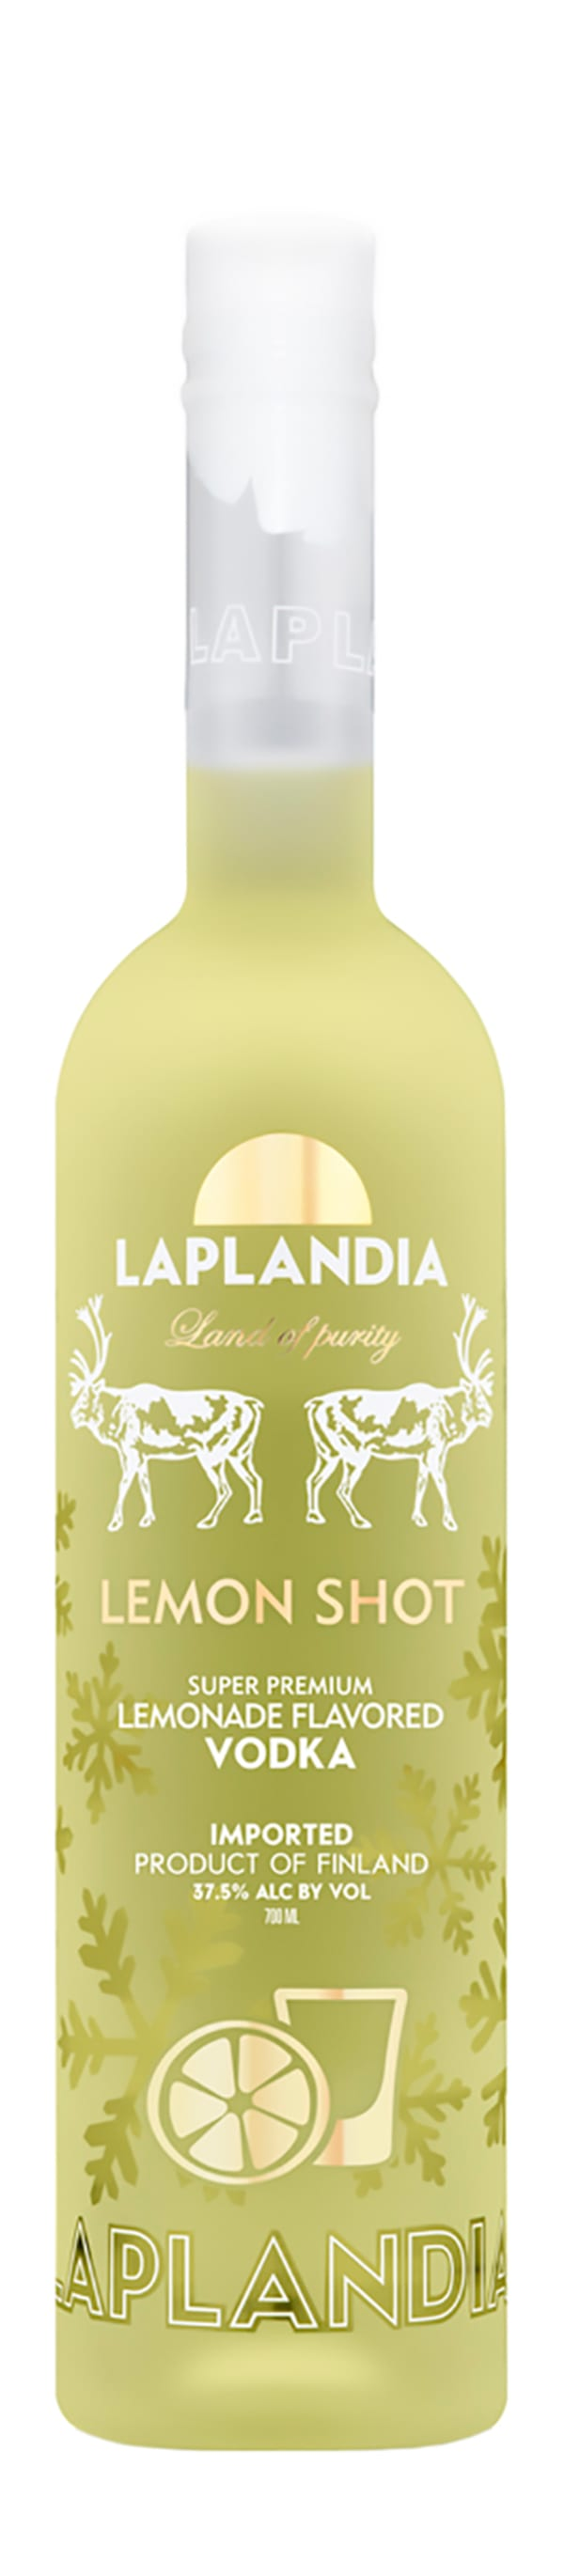 Laplandia Lemon Shot Vodka